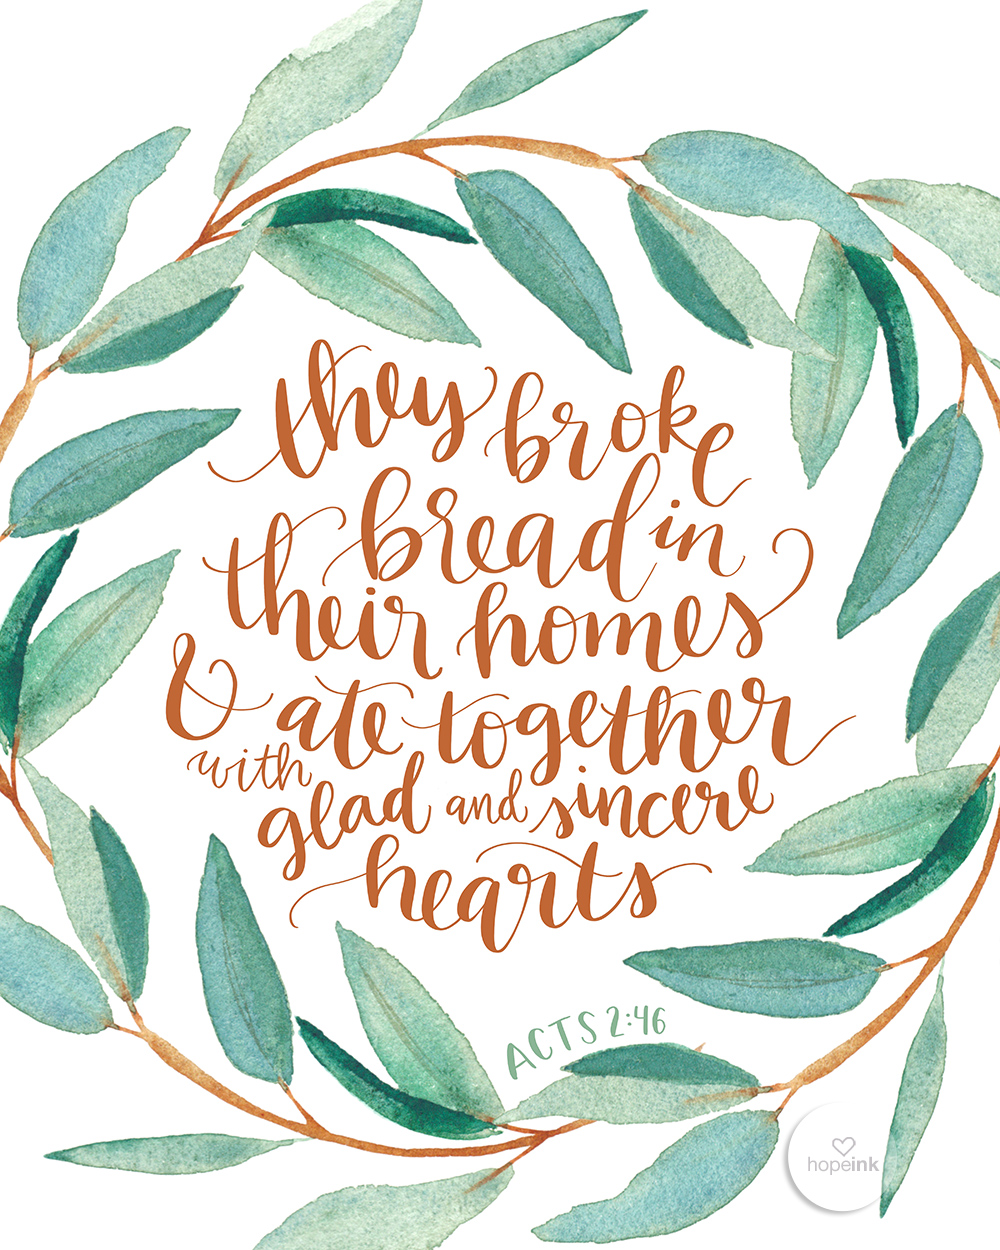 They Broke Break In Their Homes Together | Hand Lettered Scripture Art | Hope Ink.jpg